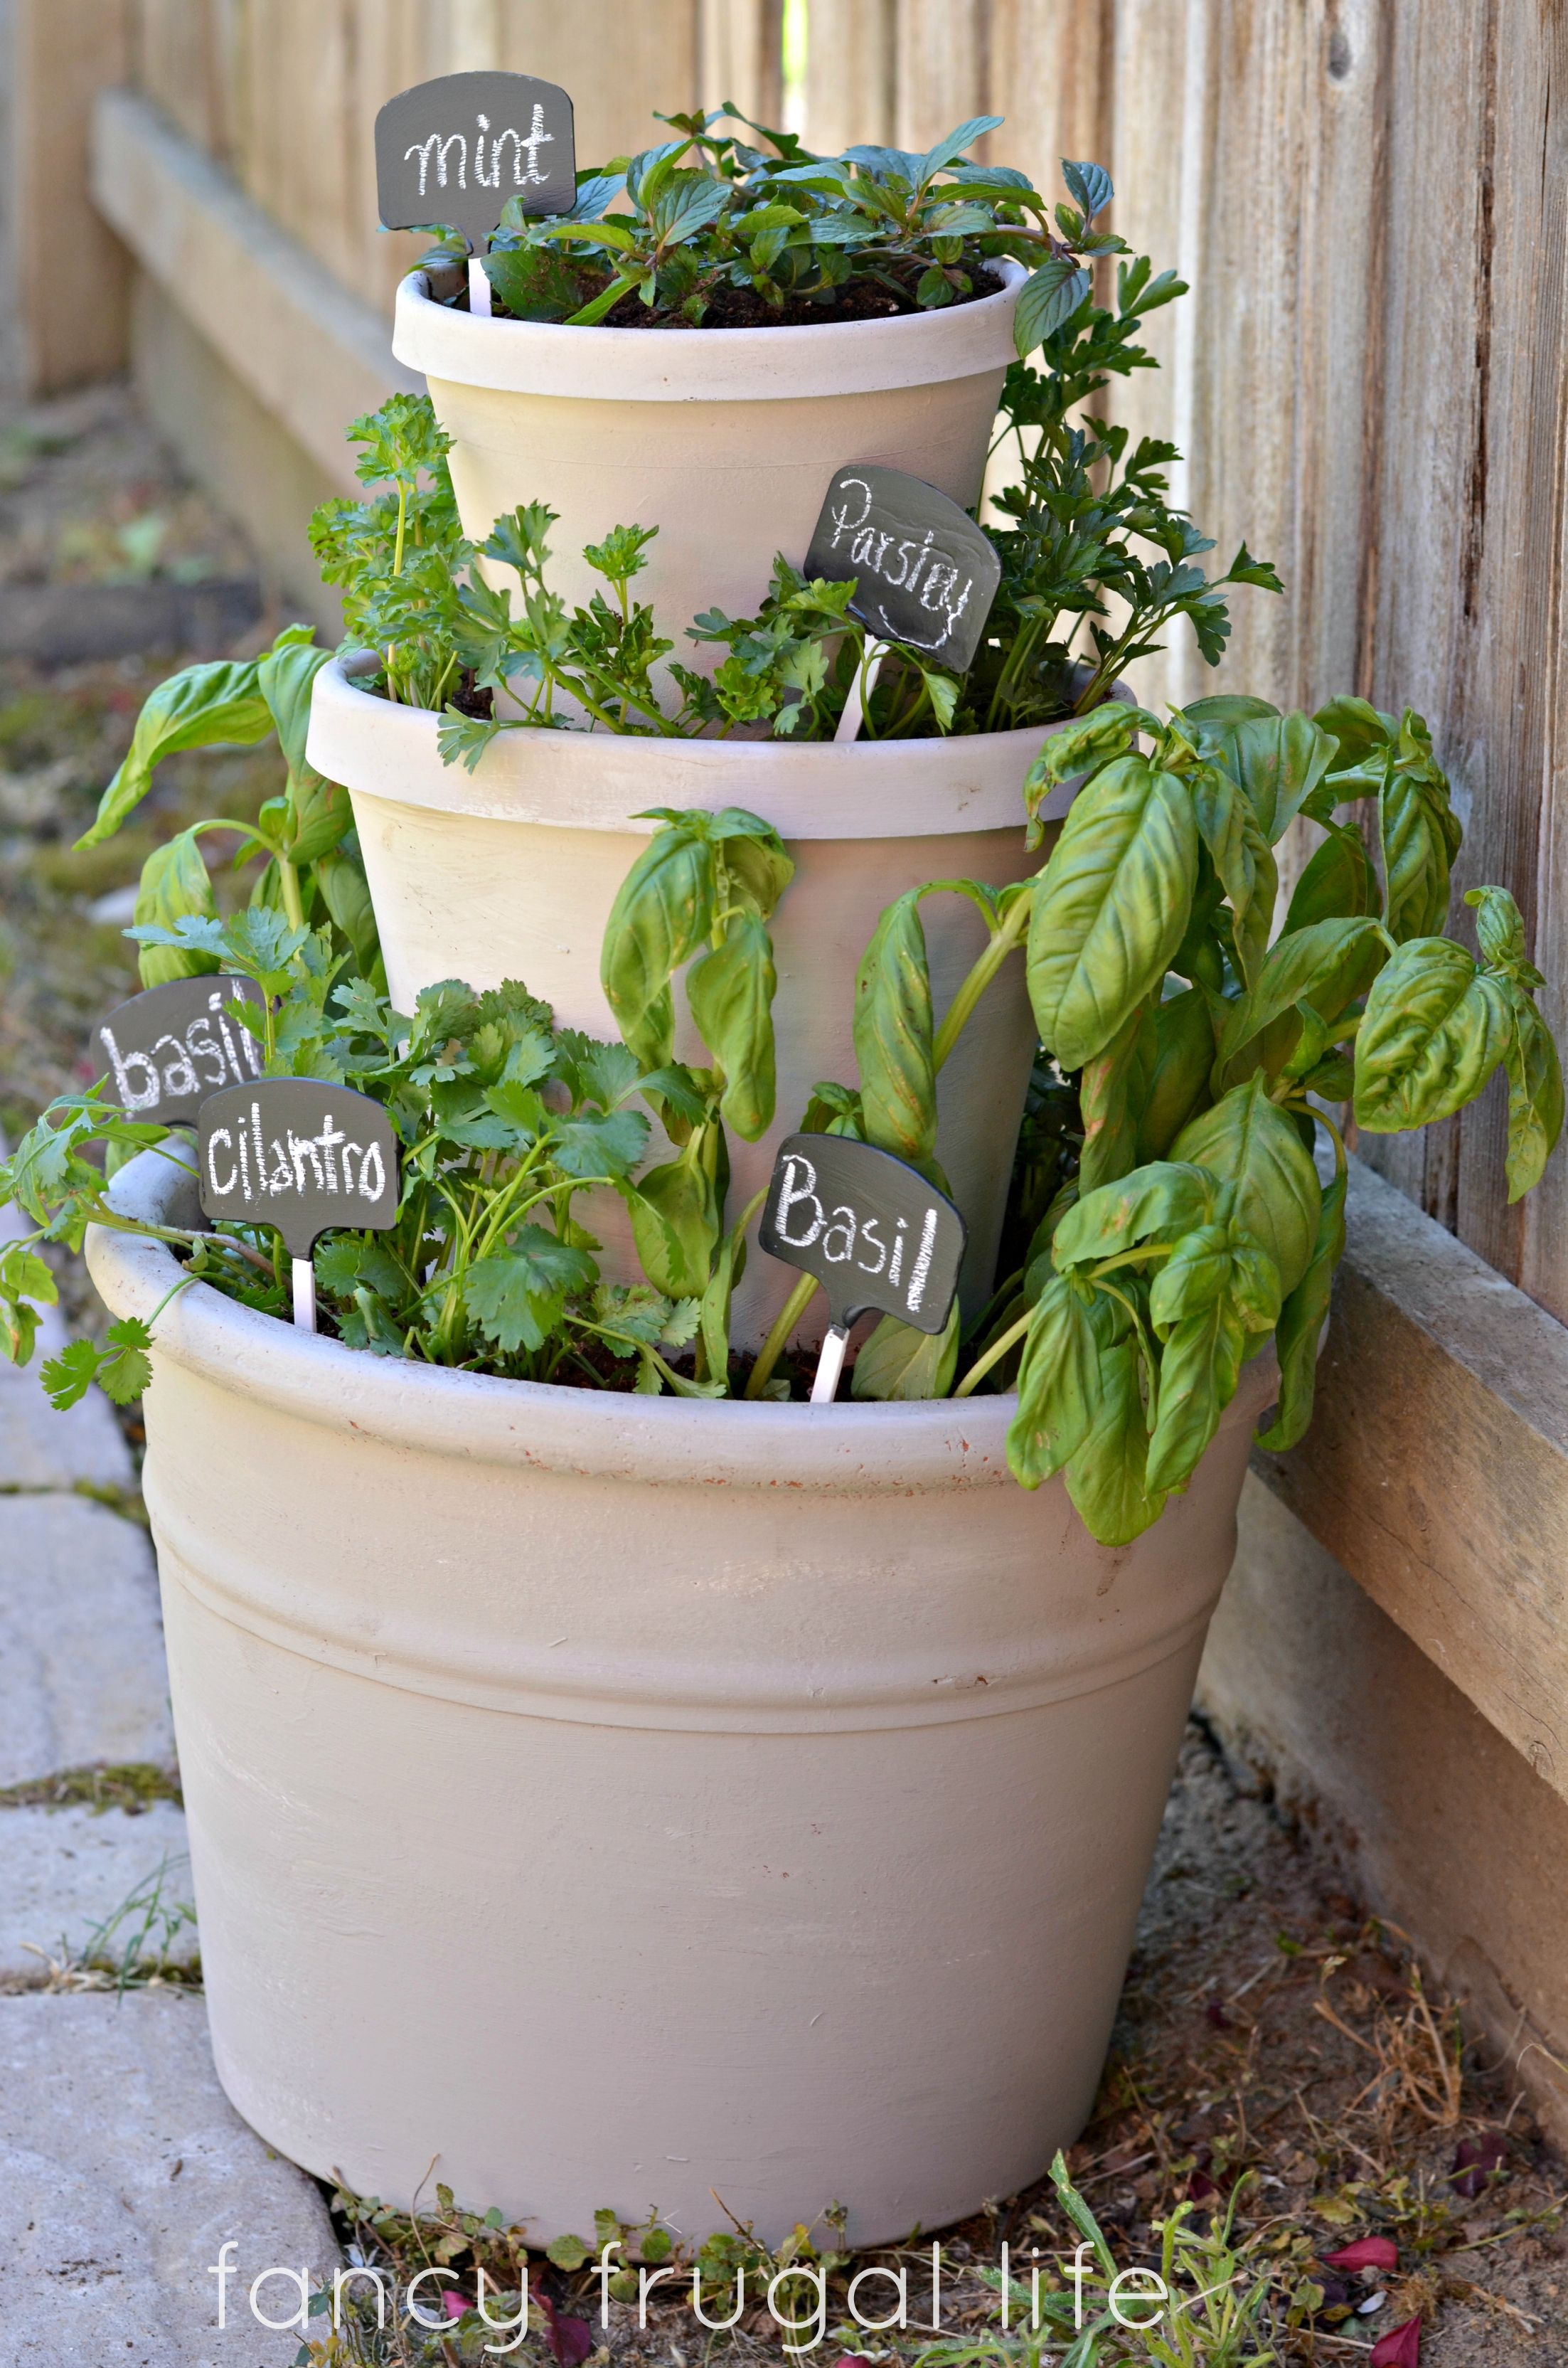 cute yet useful stacked potted herbs easy project and so fun great gift idea too